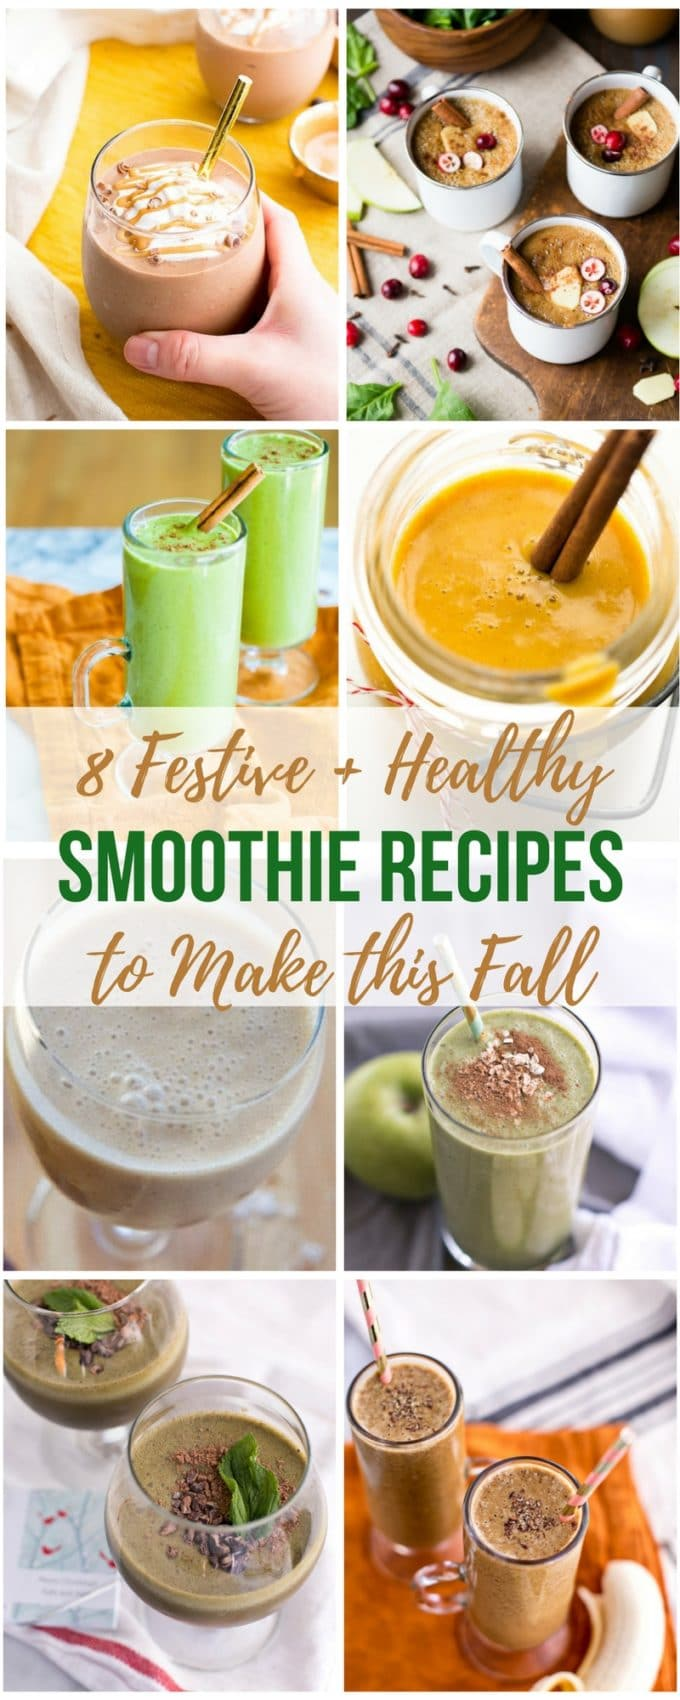 Get in the seasonal and holiday spirit this fall with these healthy breakfast smoothie recipes! From gingerbread to pumpkin spice, peppermint mocha to hot chocolate, hot mulled cider to apple pie, these healthy smoothies taste like the season in a glass!